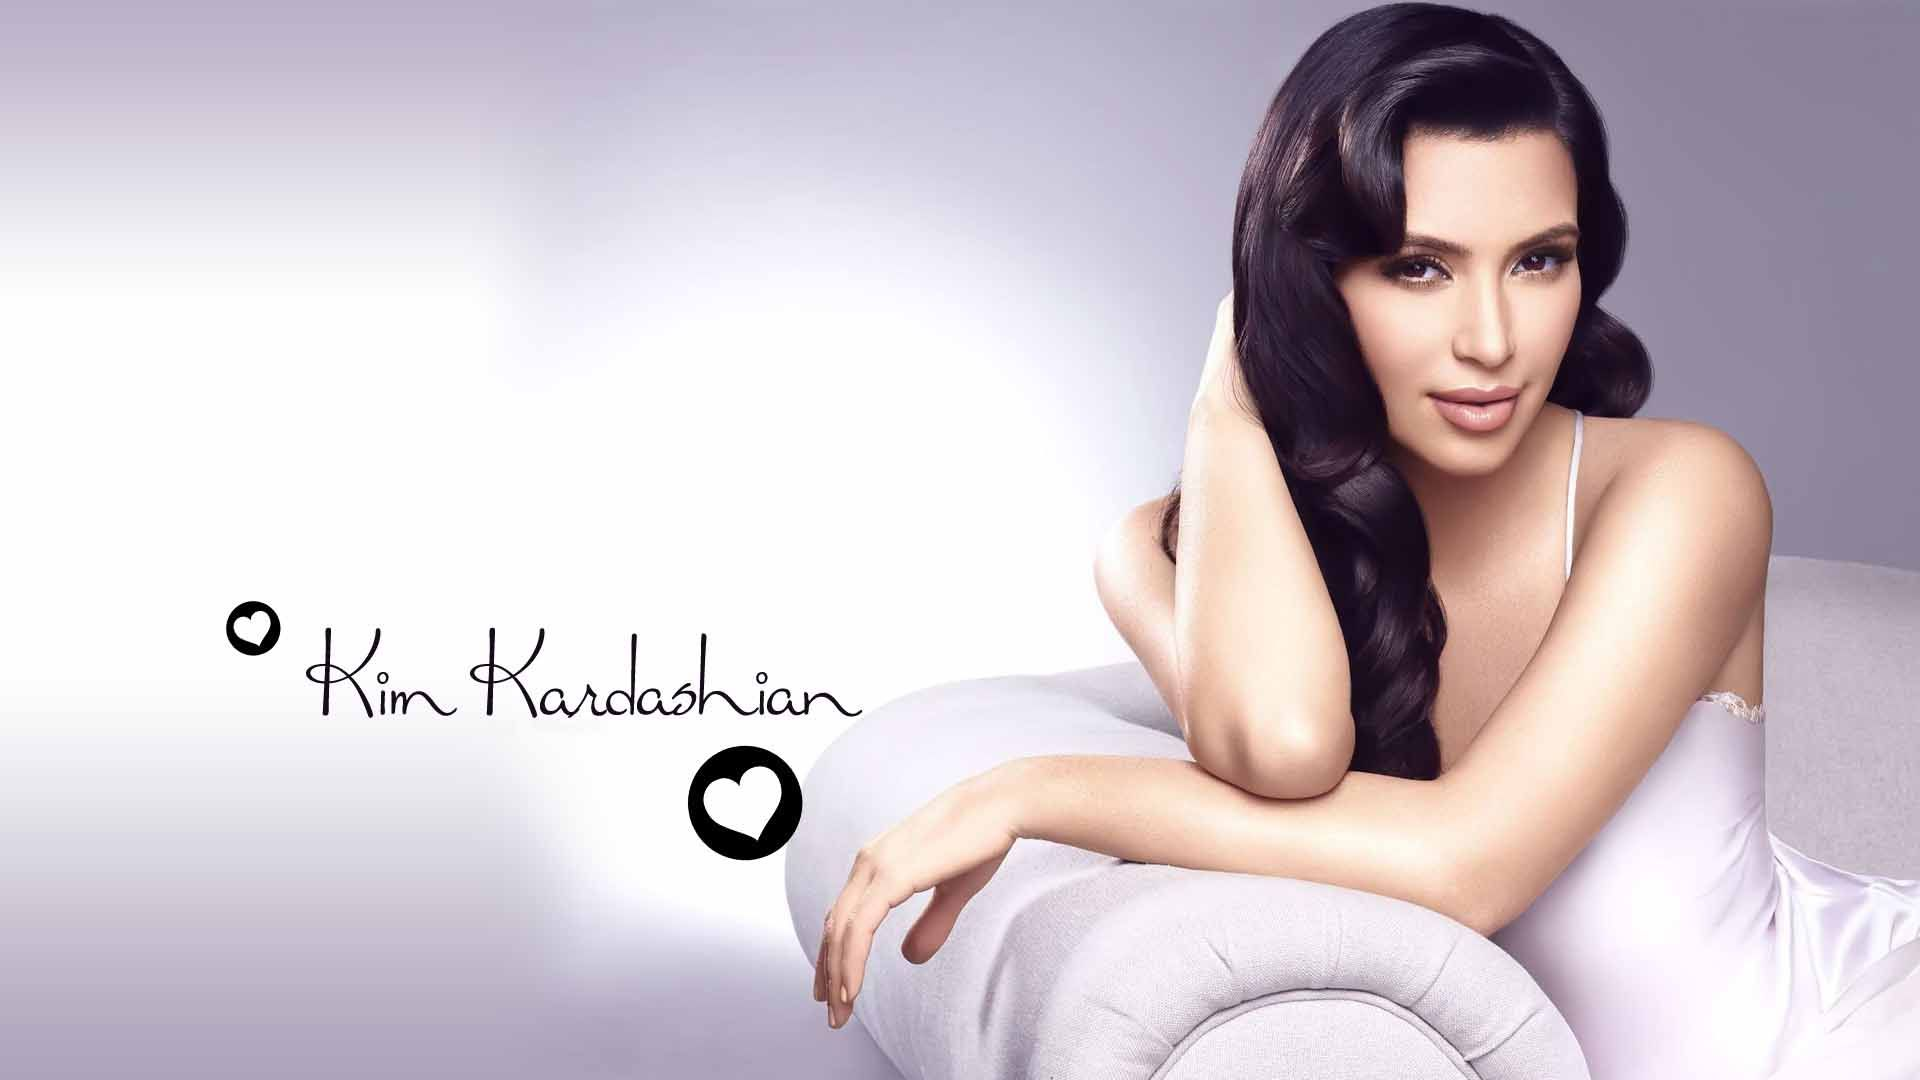 Kim Kardashian Backgrounds